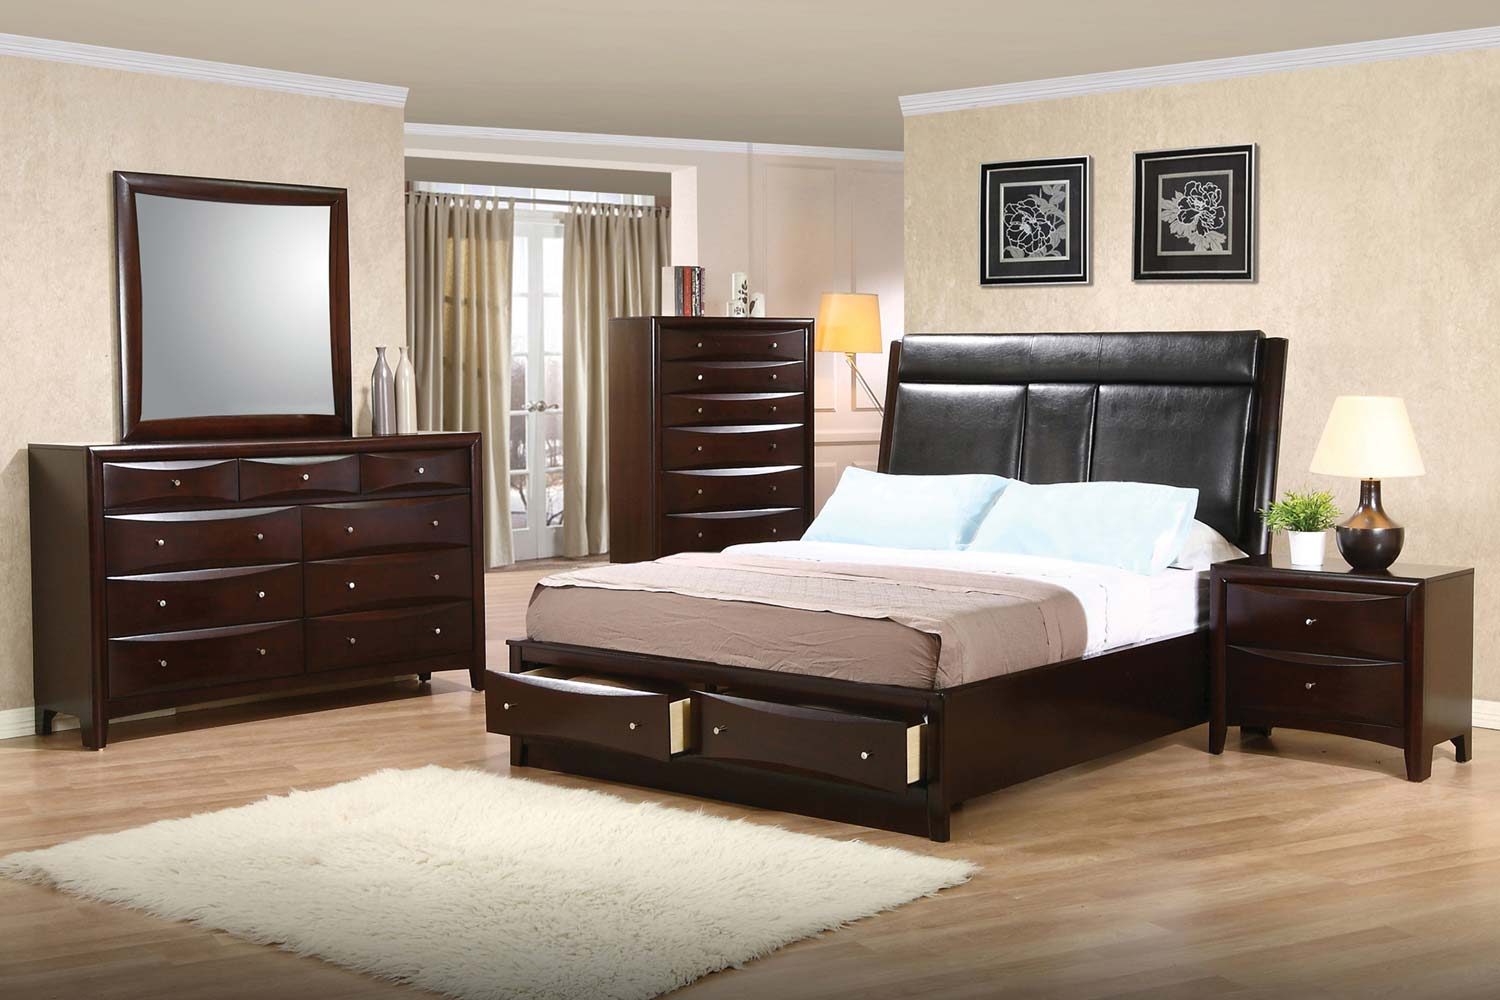 Coaster Phoenix Upholstered Storage Bedroom Set  Deep Cappuccino 200419UphStorBedSet at